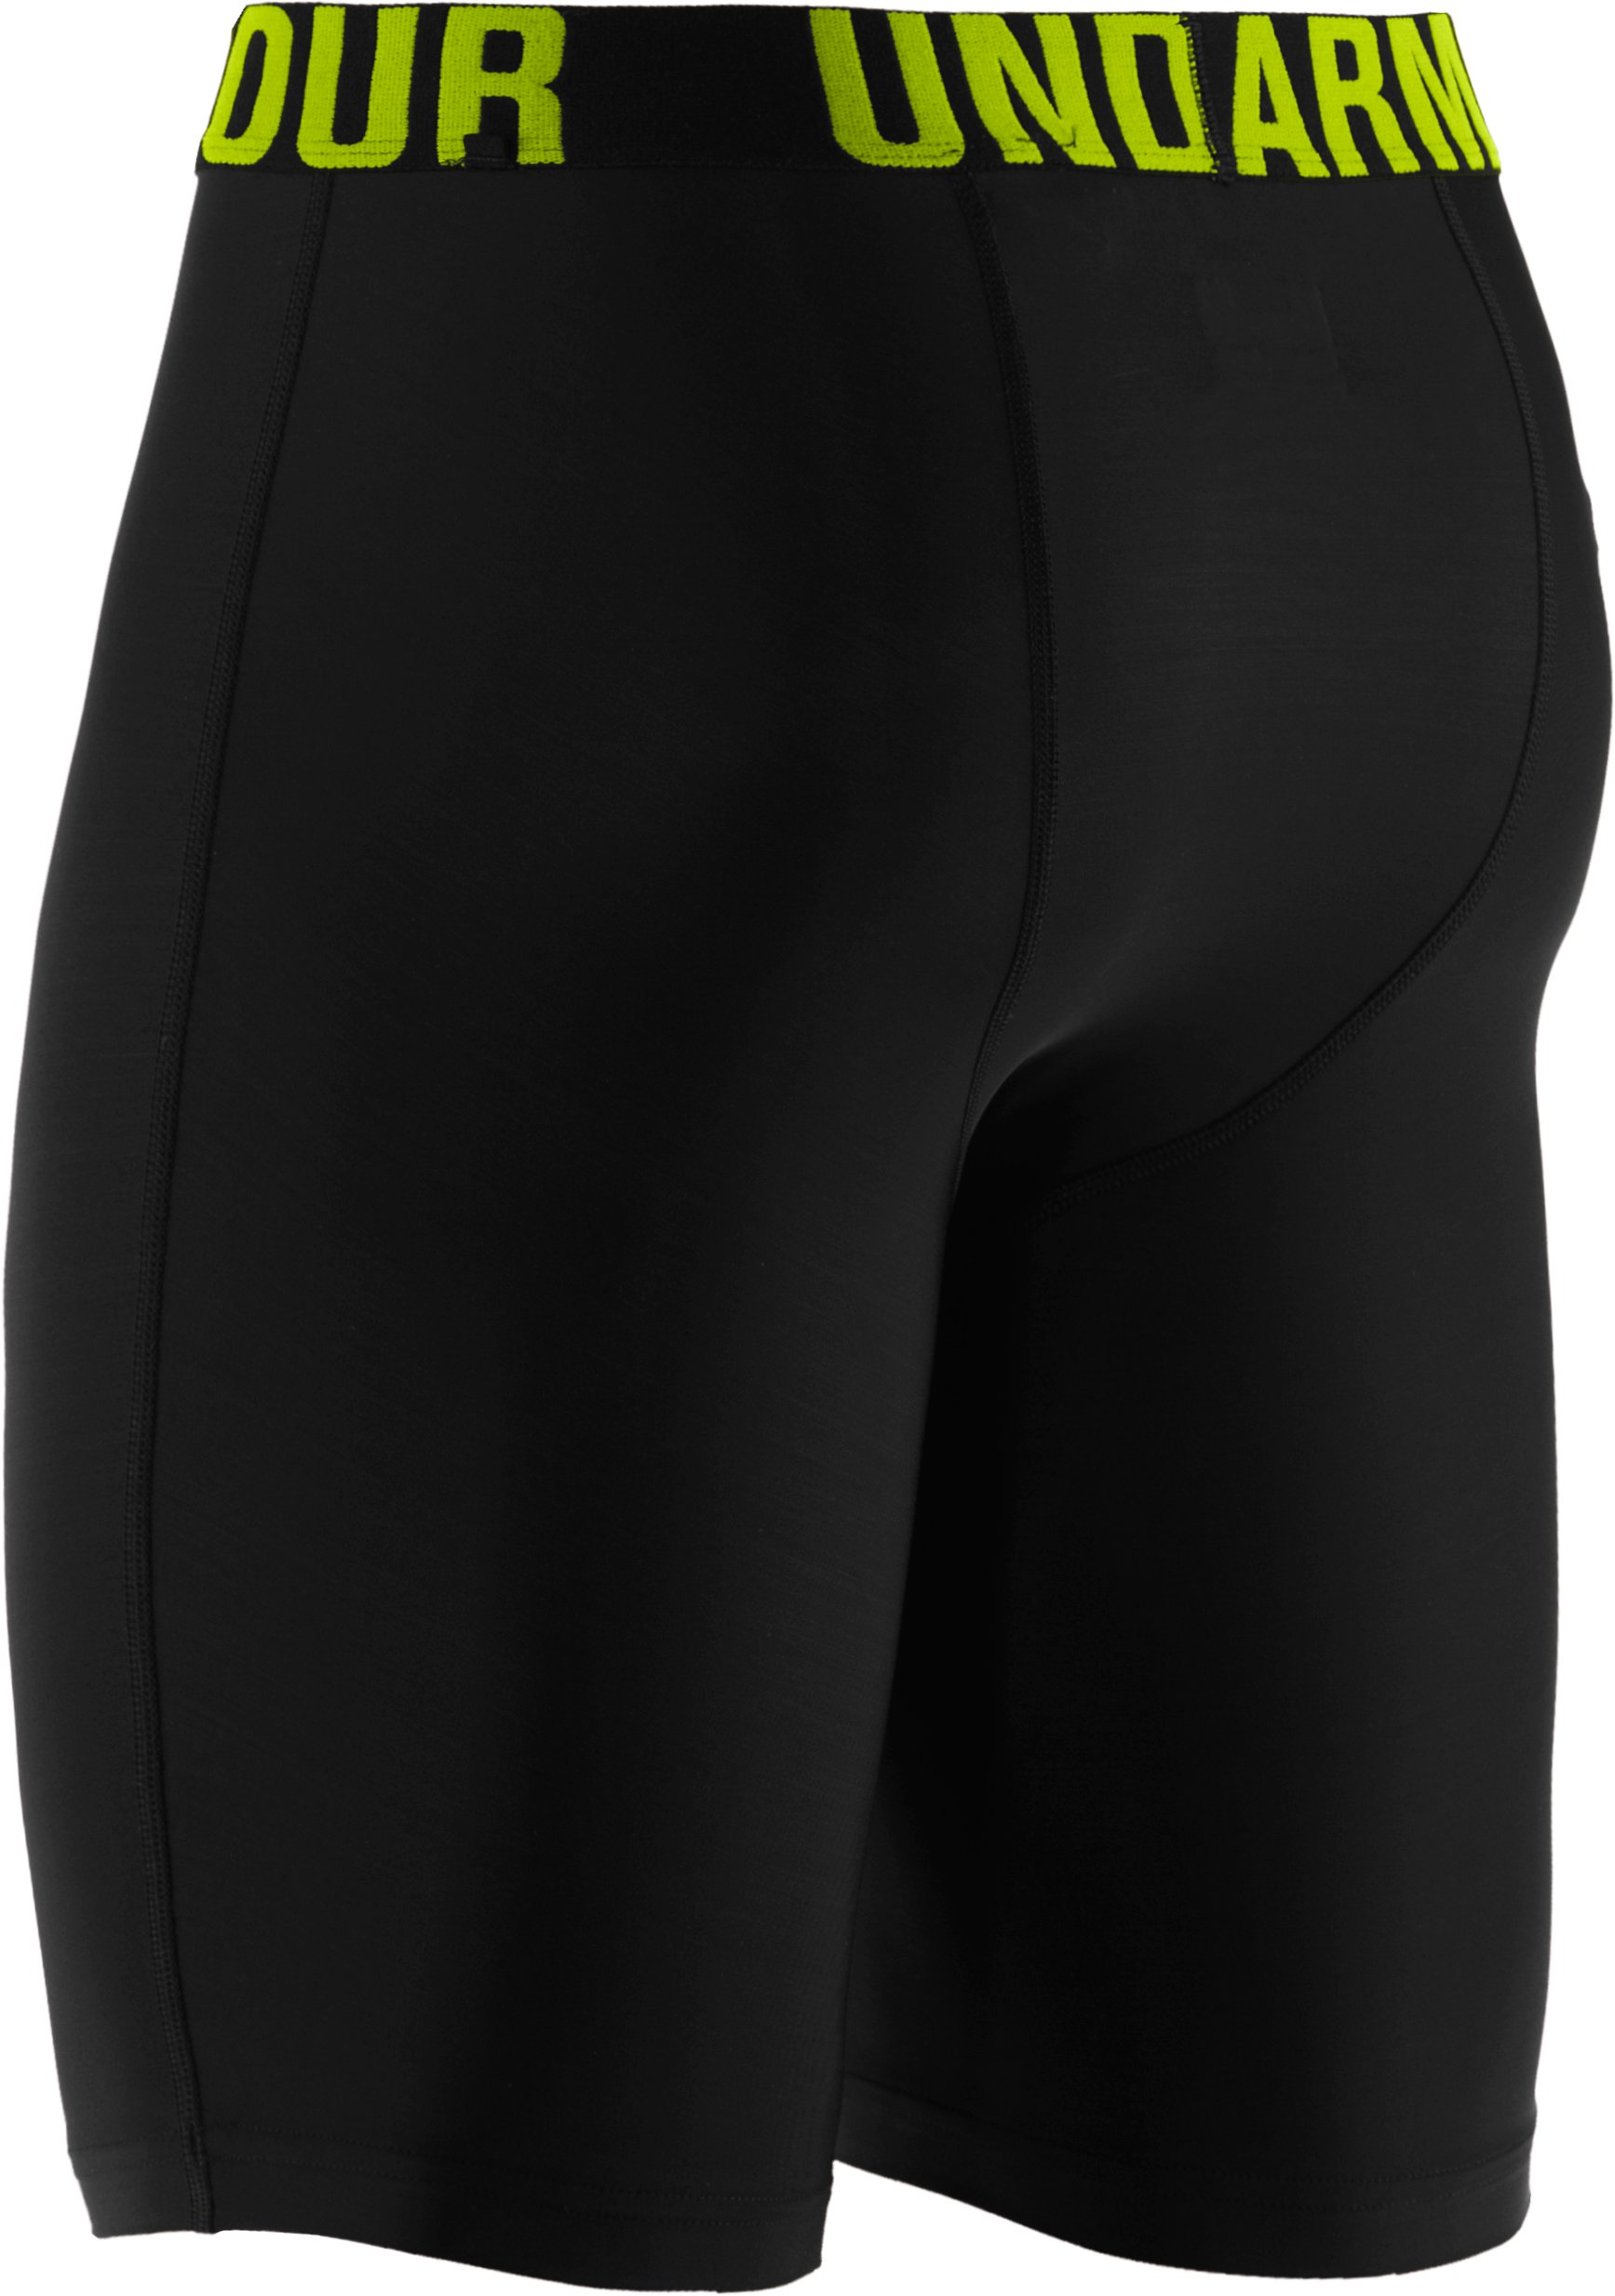 Men's UA Keewaydin Compression Shorts, Black